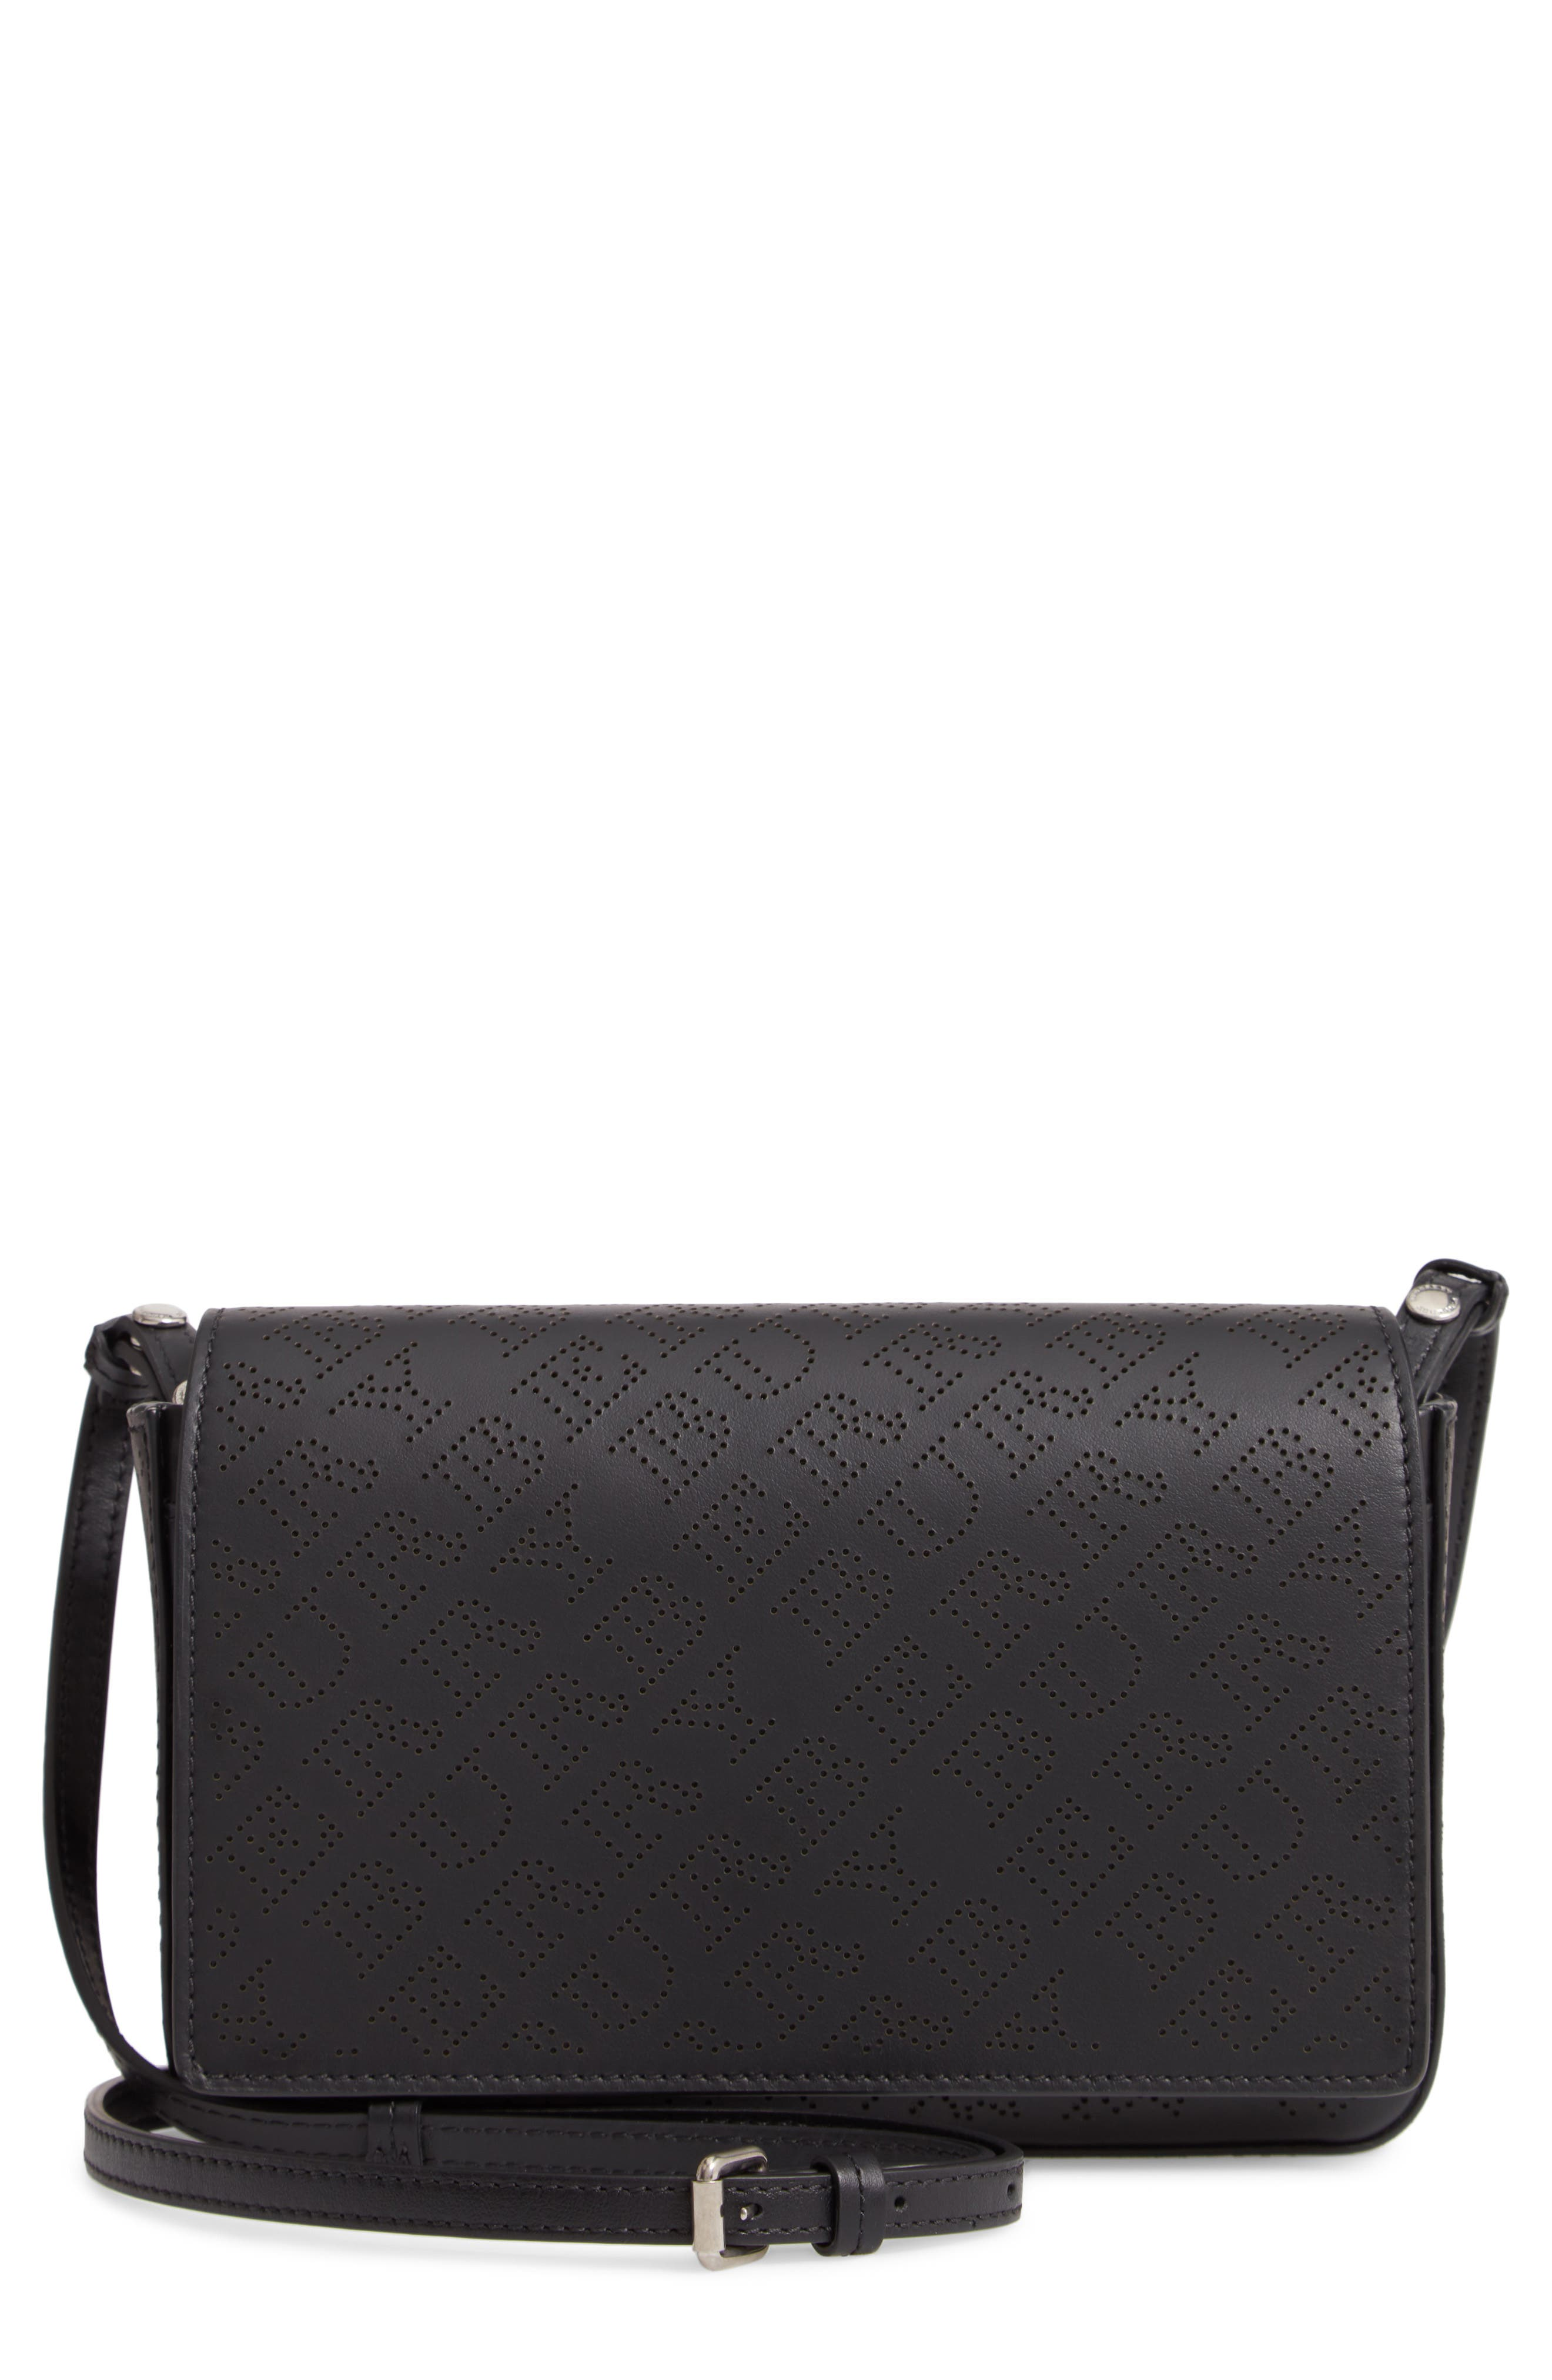 Hampshire Perforated Leather Crossbody Bag,                         Main,                         color, BLACK